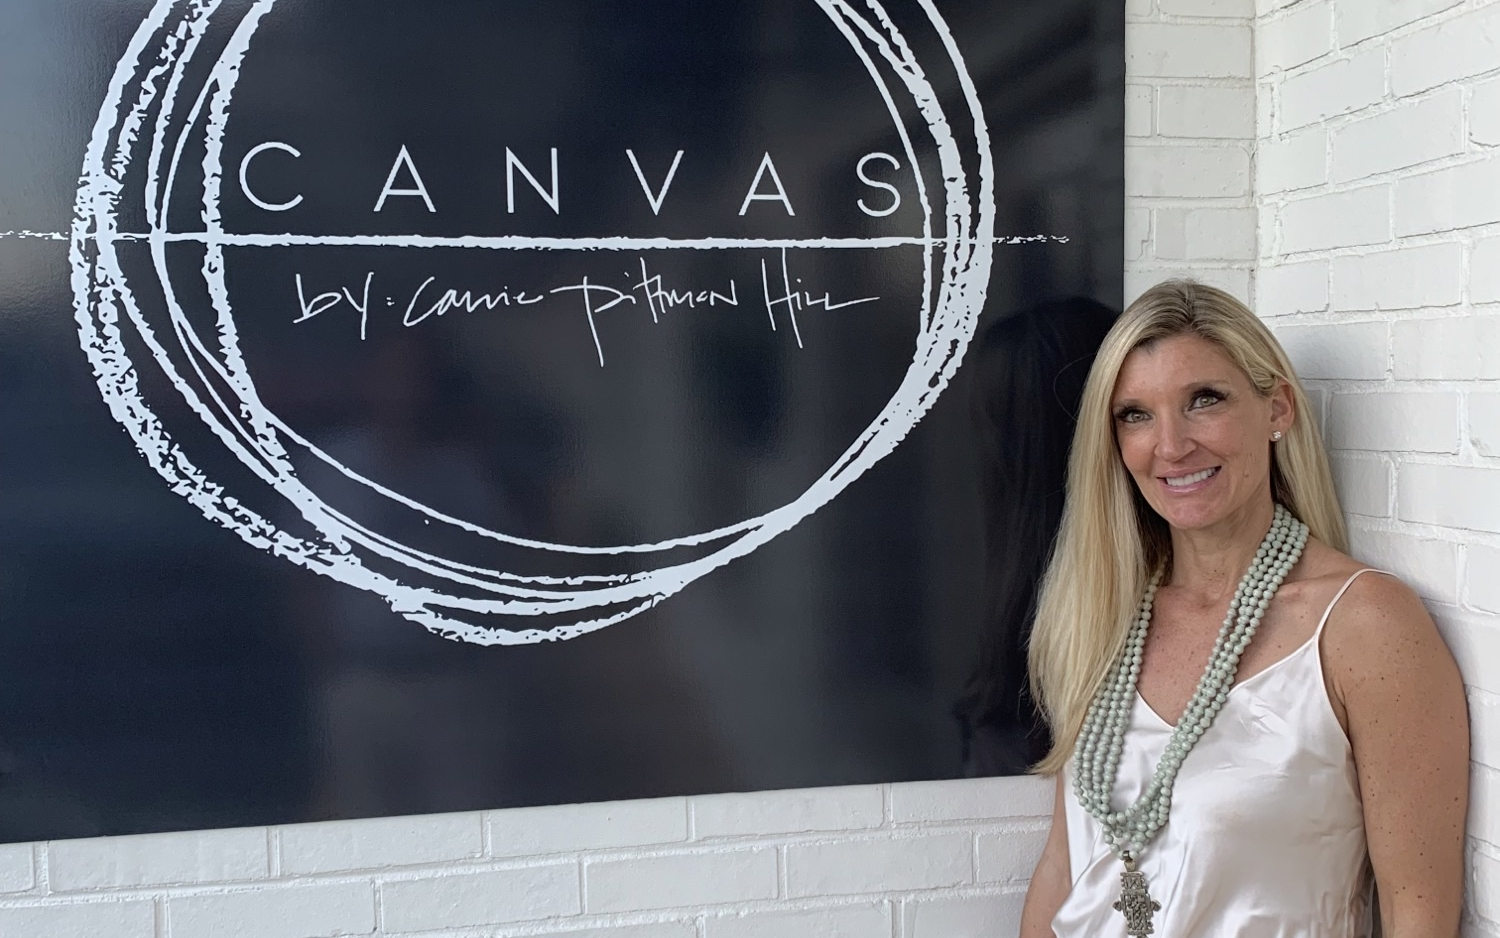 New opening: CANVAS brings art + home goods to Homewood